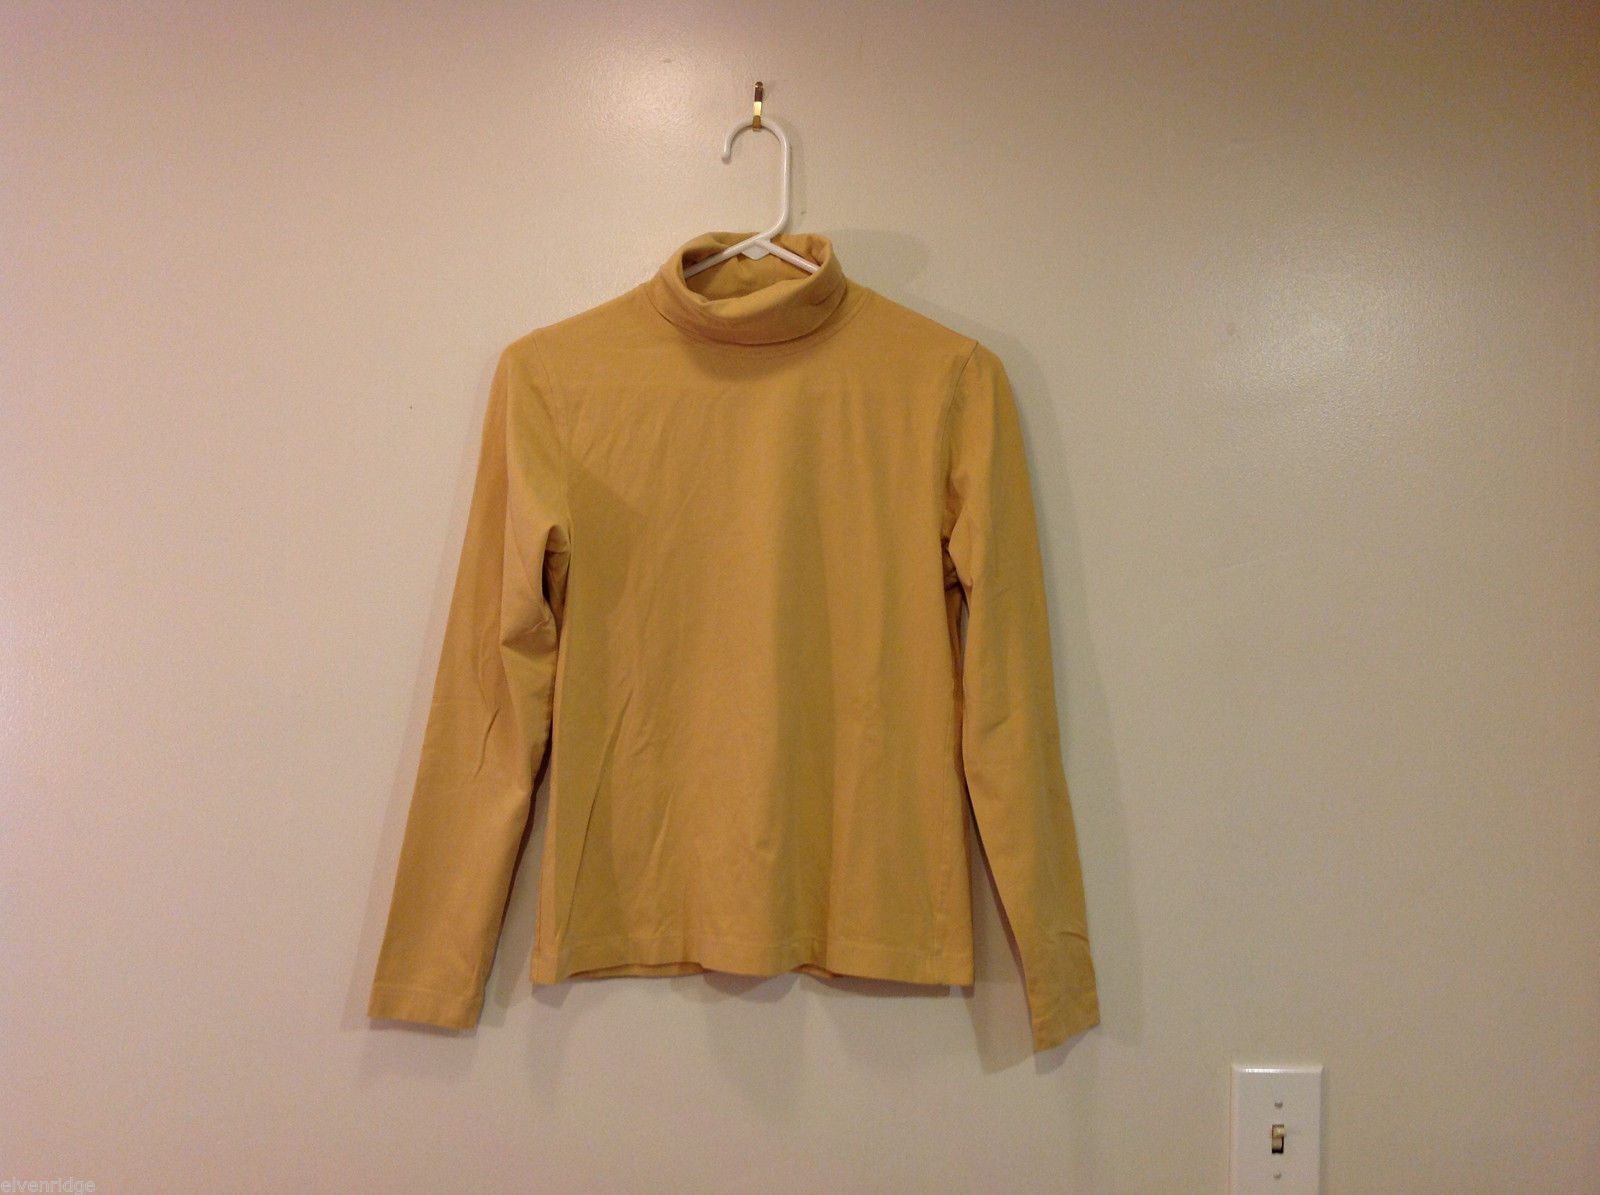 Chicos Soft Mustard Yellow Turtleneck sweater, Size 0